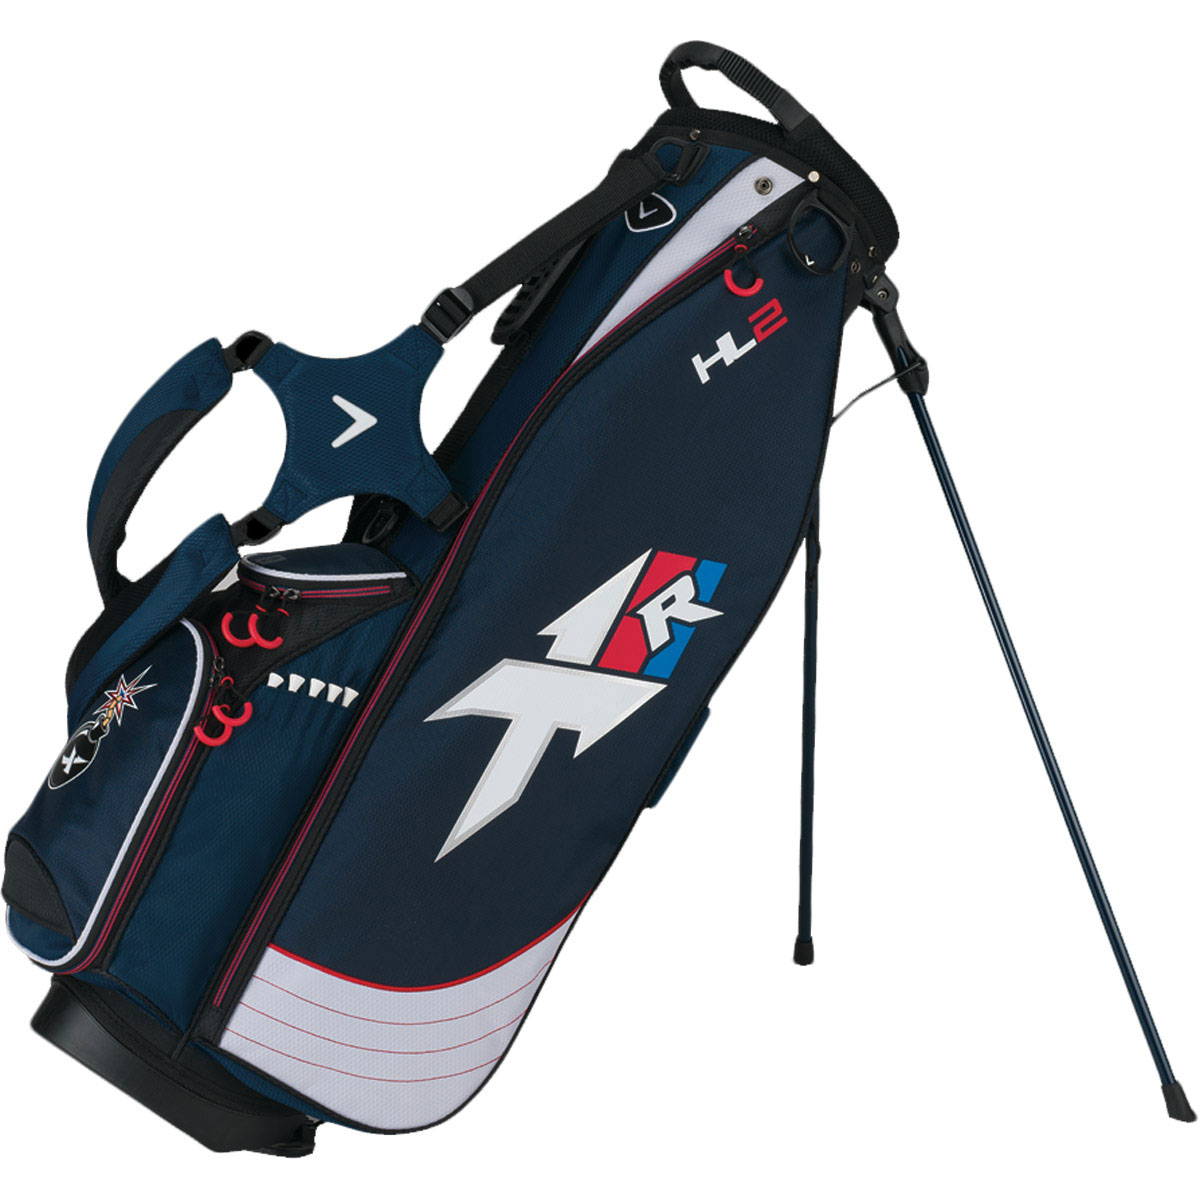 7 way golf stand bag how to set a table diagram callaway 2015 hyper lite 2 lightweight carry